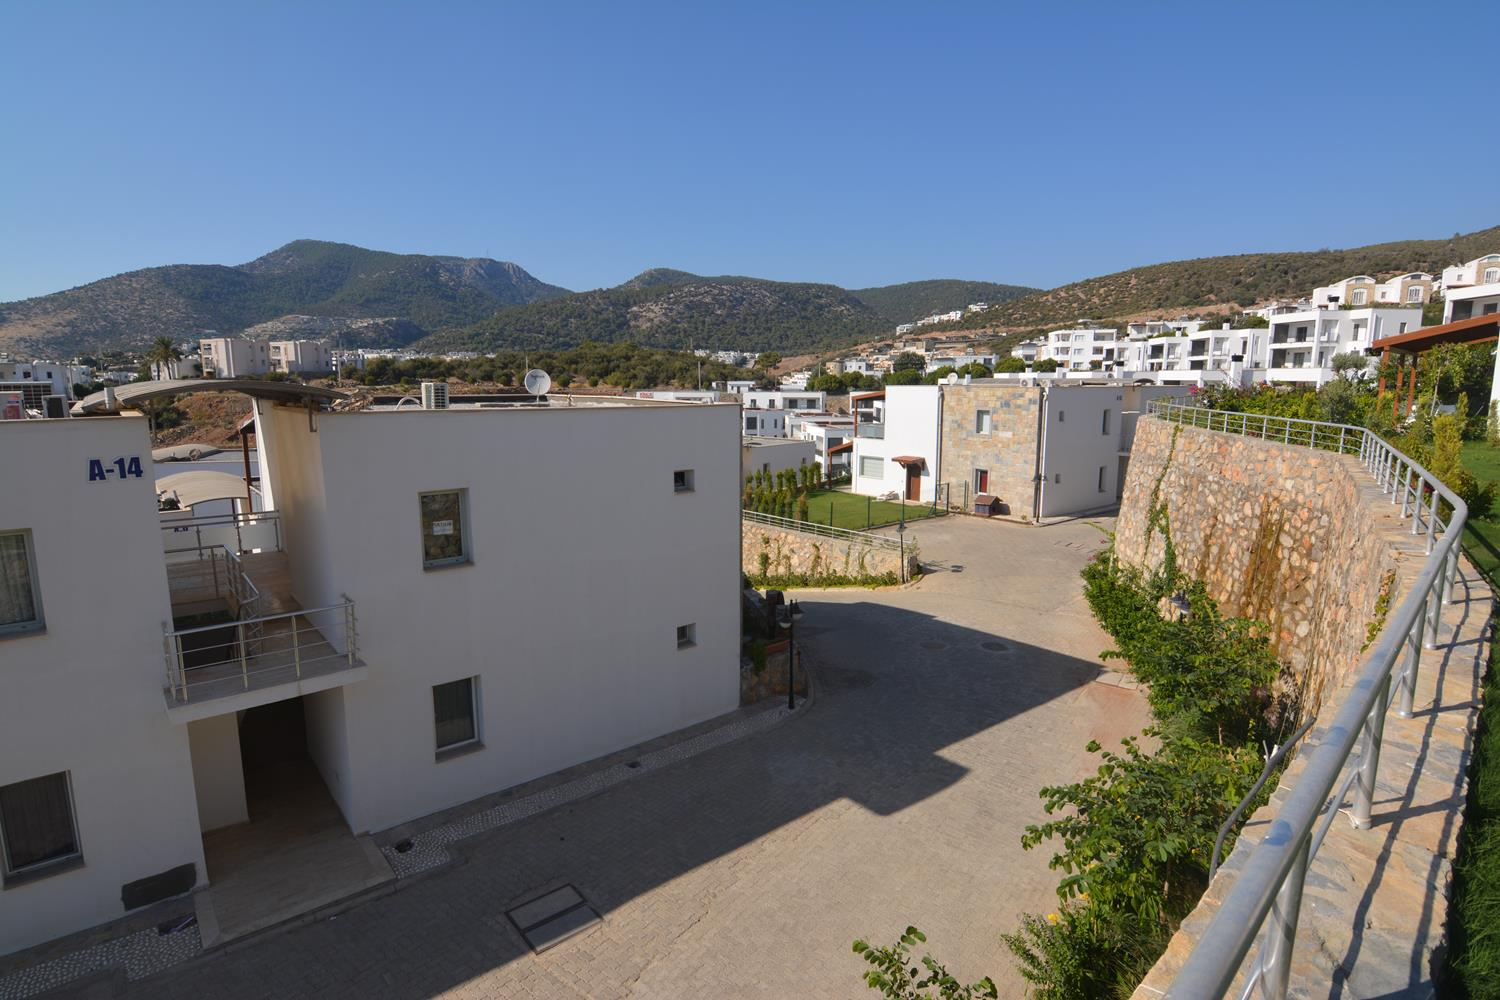 19361_import_Bodrum-Konacik-Apartments-6